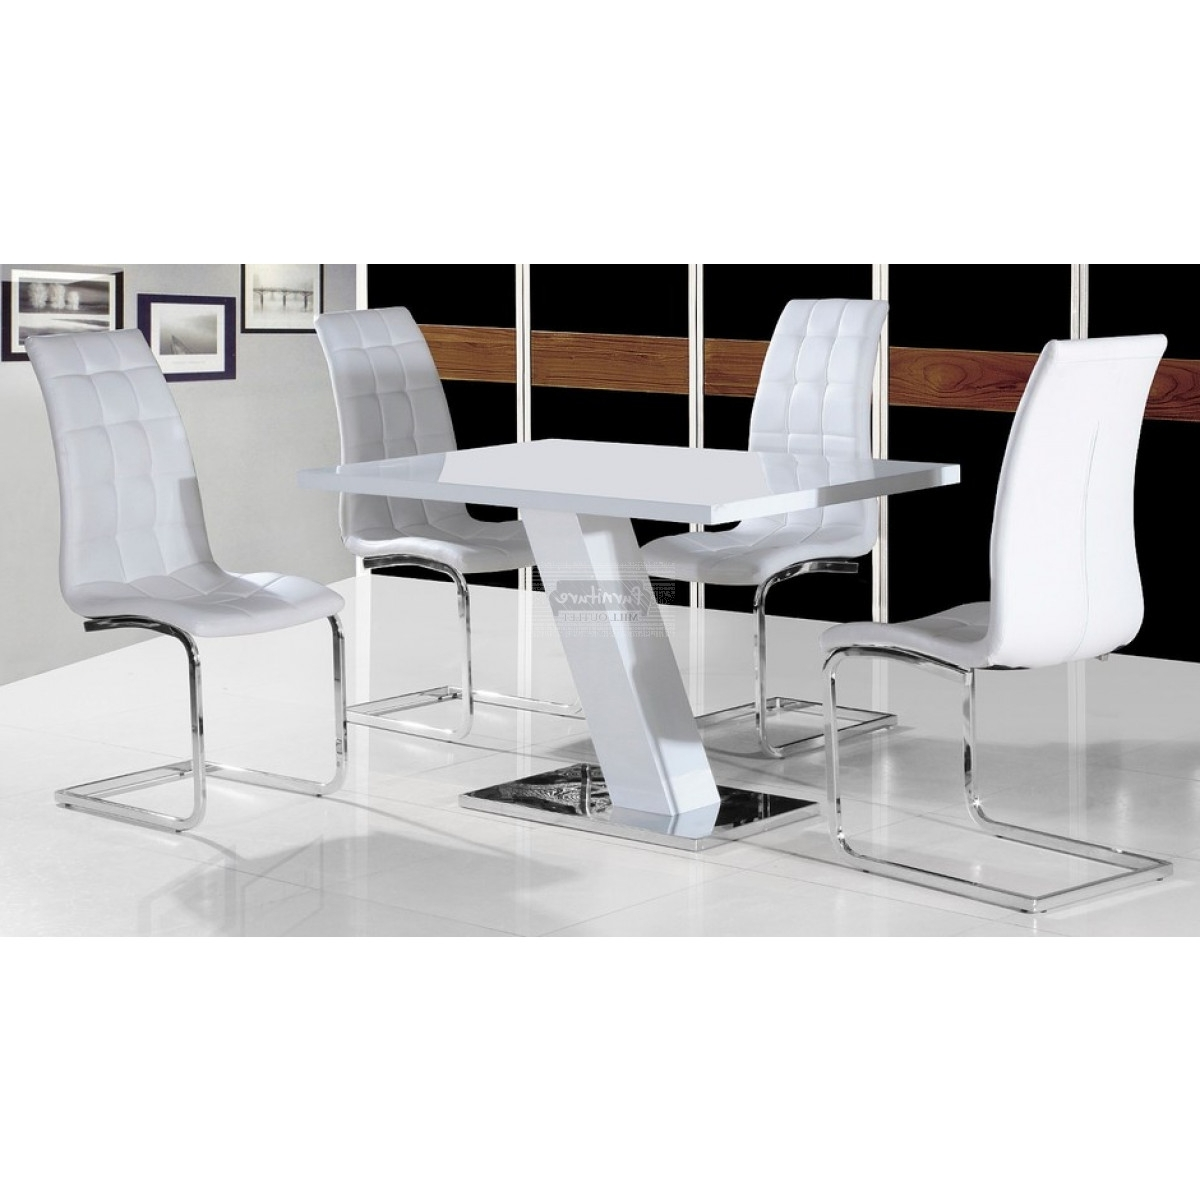 Gloss White Dining Tables And Chairs Throughout Well Known Aliyah High Gloss Dining Table In White – Furniture Mill Outlet (Gallery 23 of 25)